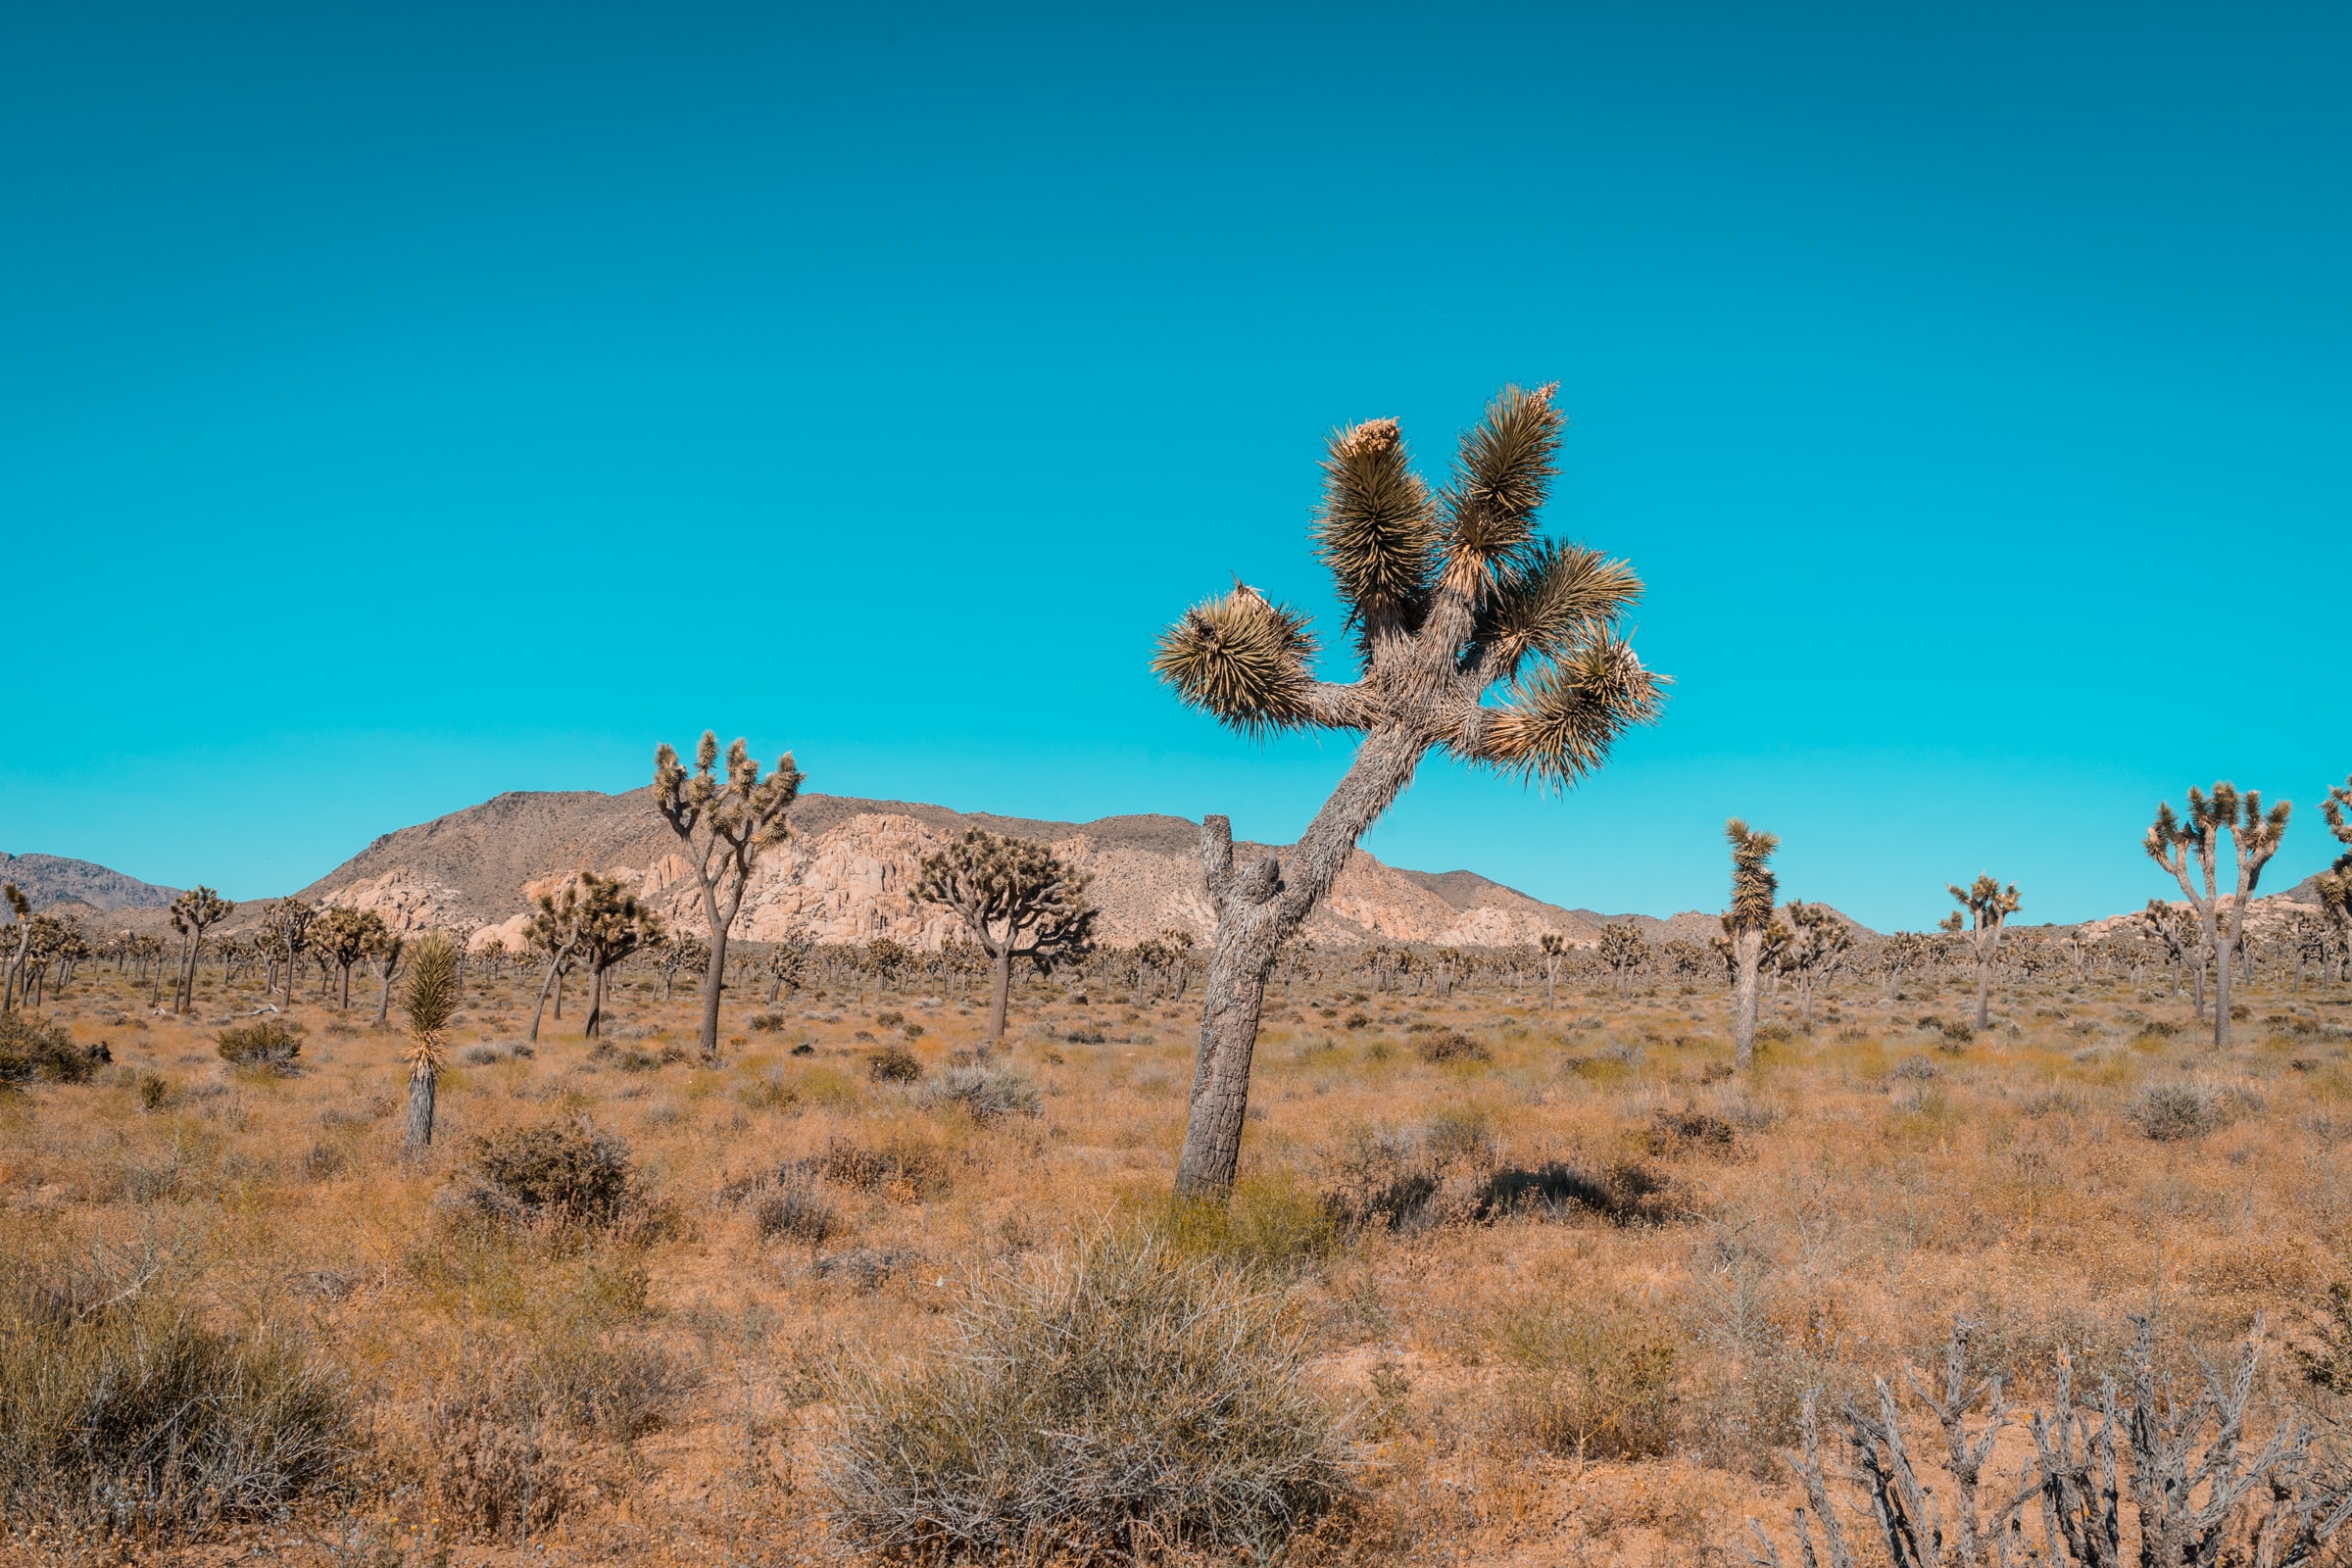 Hot summer day in the desolate desert of Joshua Tree